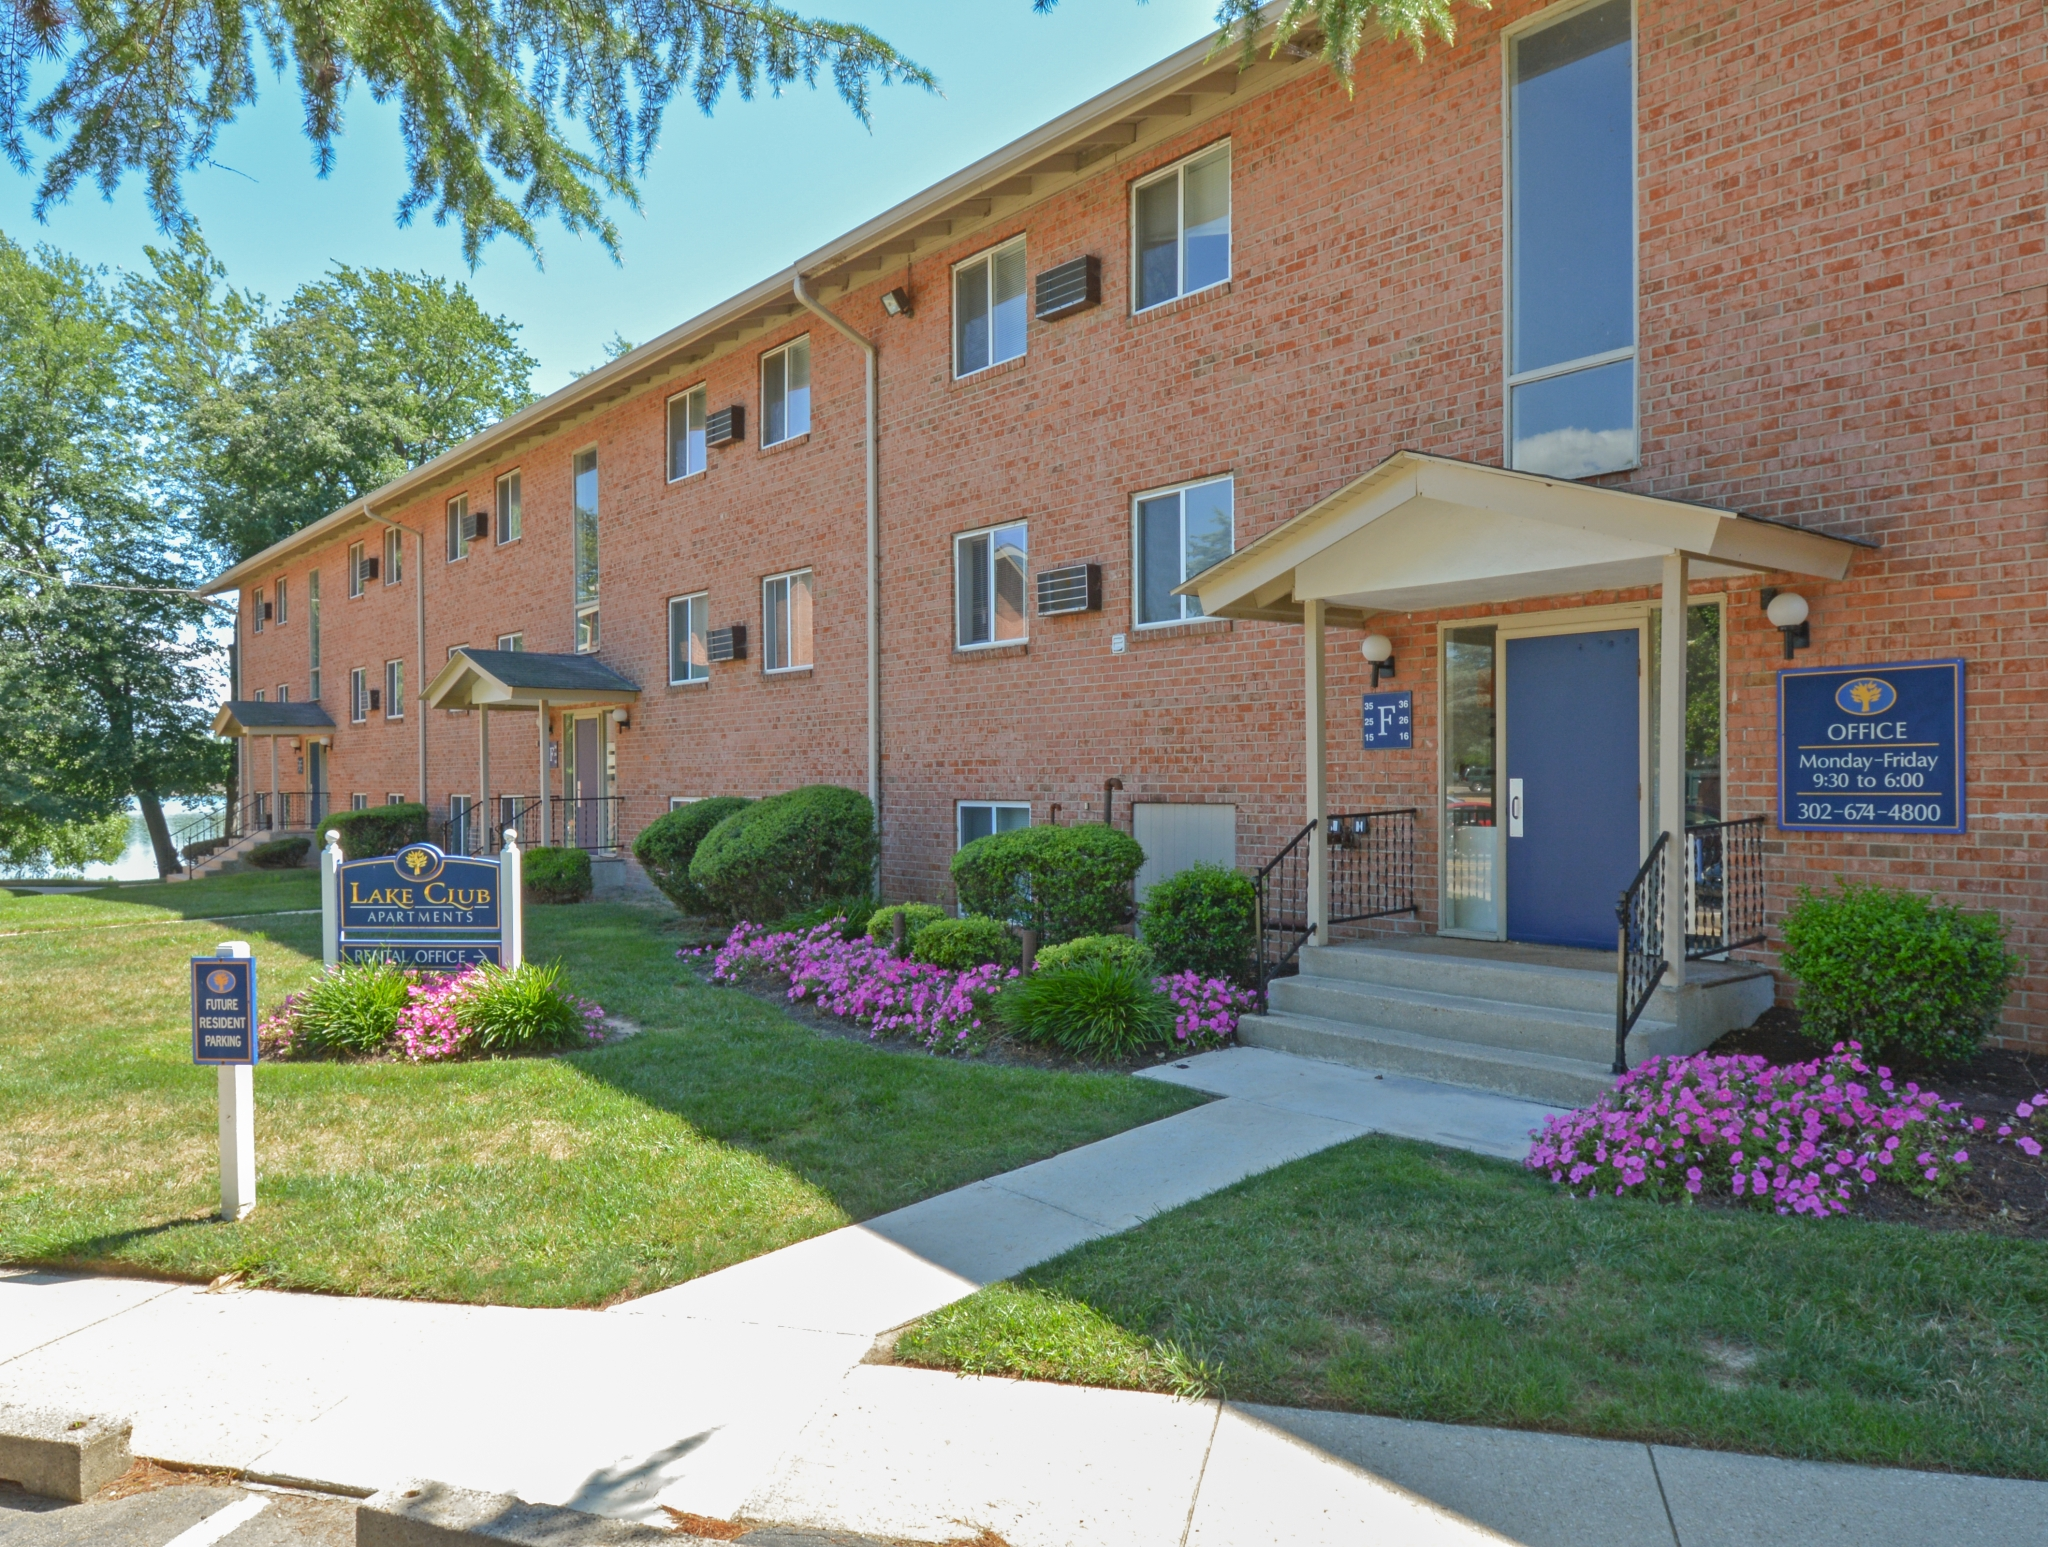 Friendly Office Staff | Dover DE Apartments For Rent | Lake Club Apartments